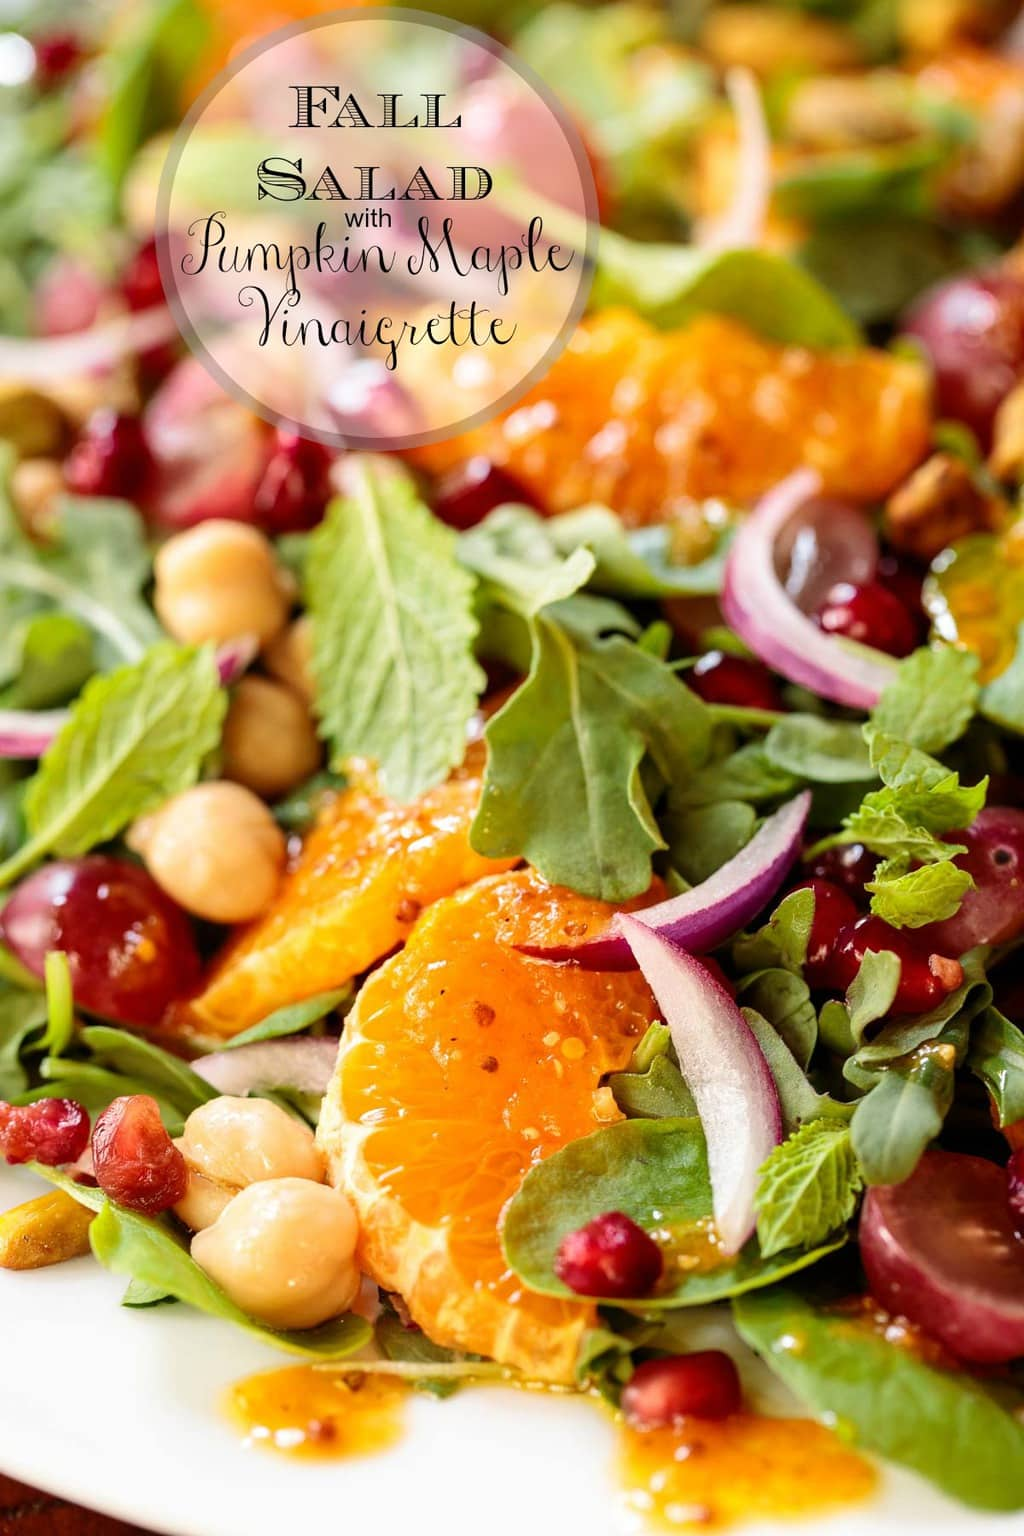 This vibrant fall salad is the perfect way to embrace autumn. It'swith loaded healthy, seasonal ingredients and a fabulous pumpkin dressing. #fallsalad, #healthydinner, #healthysalad, #clementinesalad, #redgrapes, #arugularsalad, fallsaladdressing